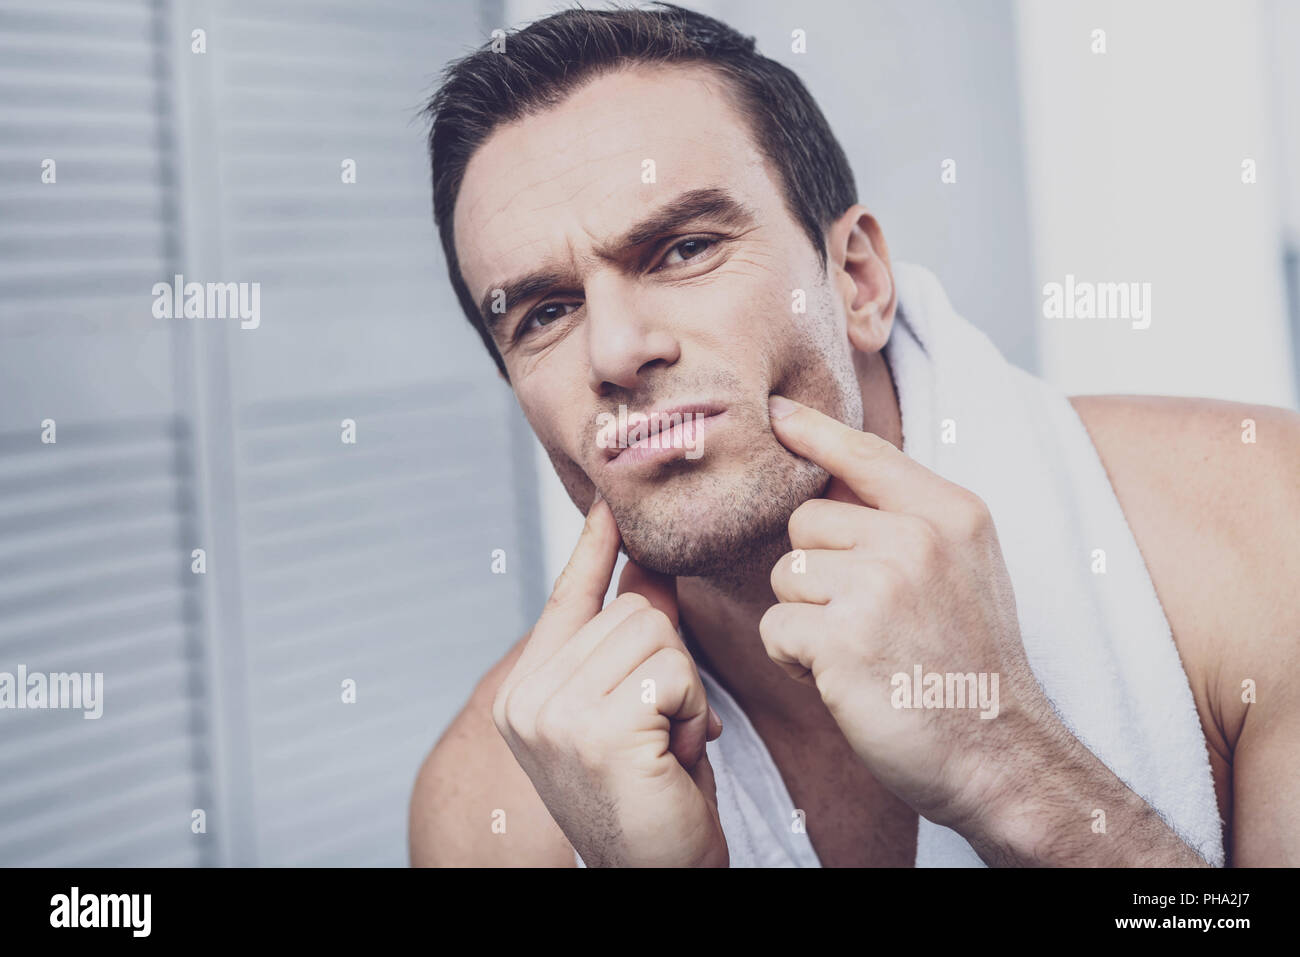 Serious man pressing fingers on his cheeks - Stock Image